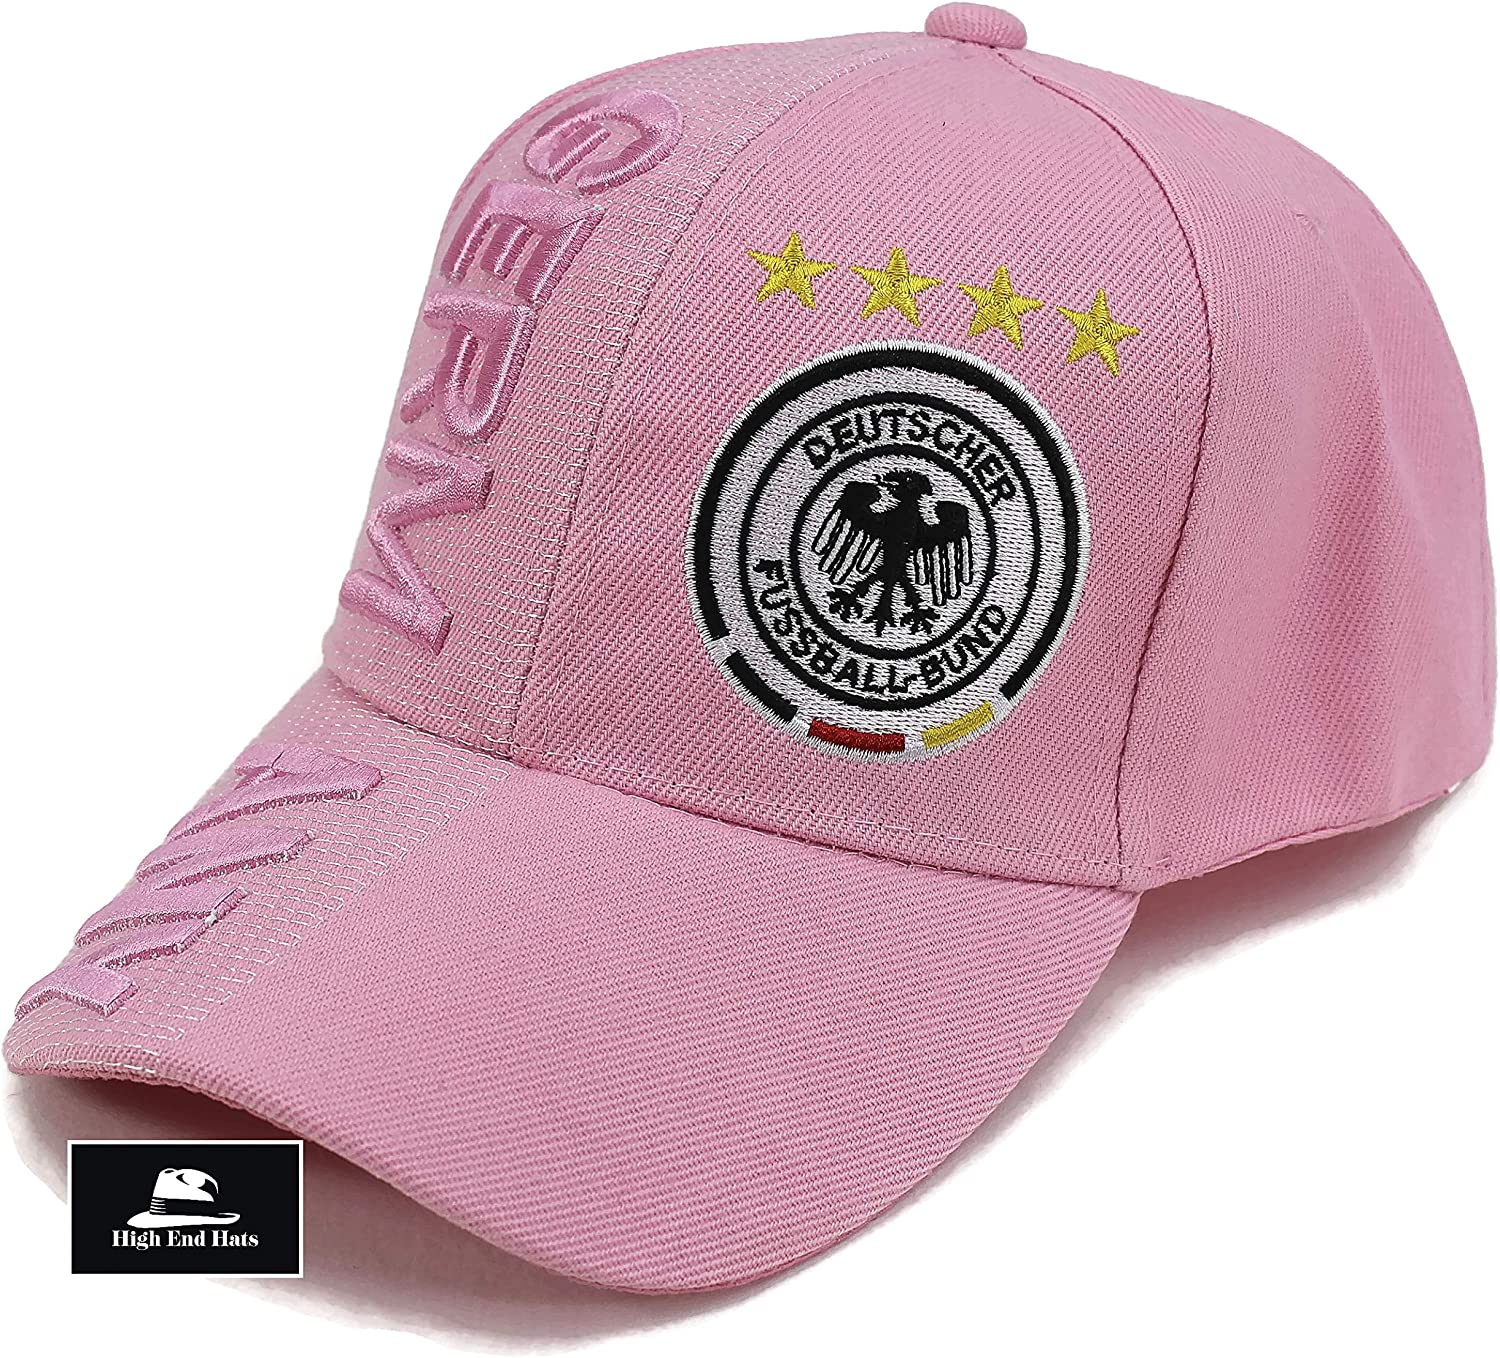 "High End Hats /""Nations of Europe Hat Collection/"" 3D Embroidered Adjustable Baseball Cap"